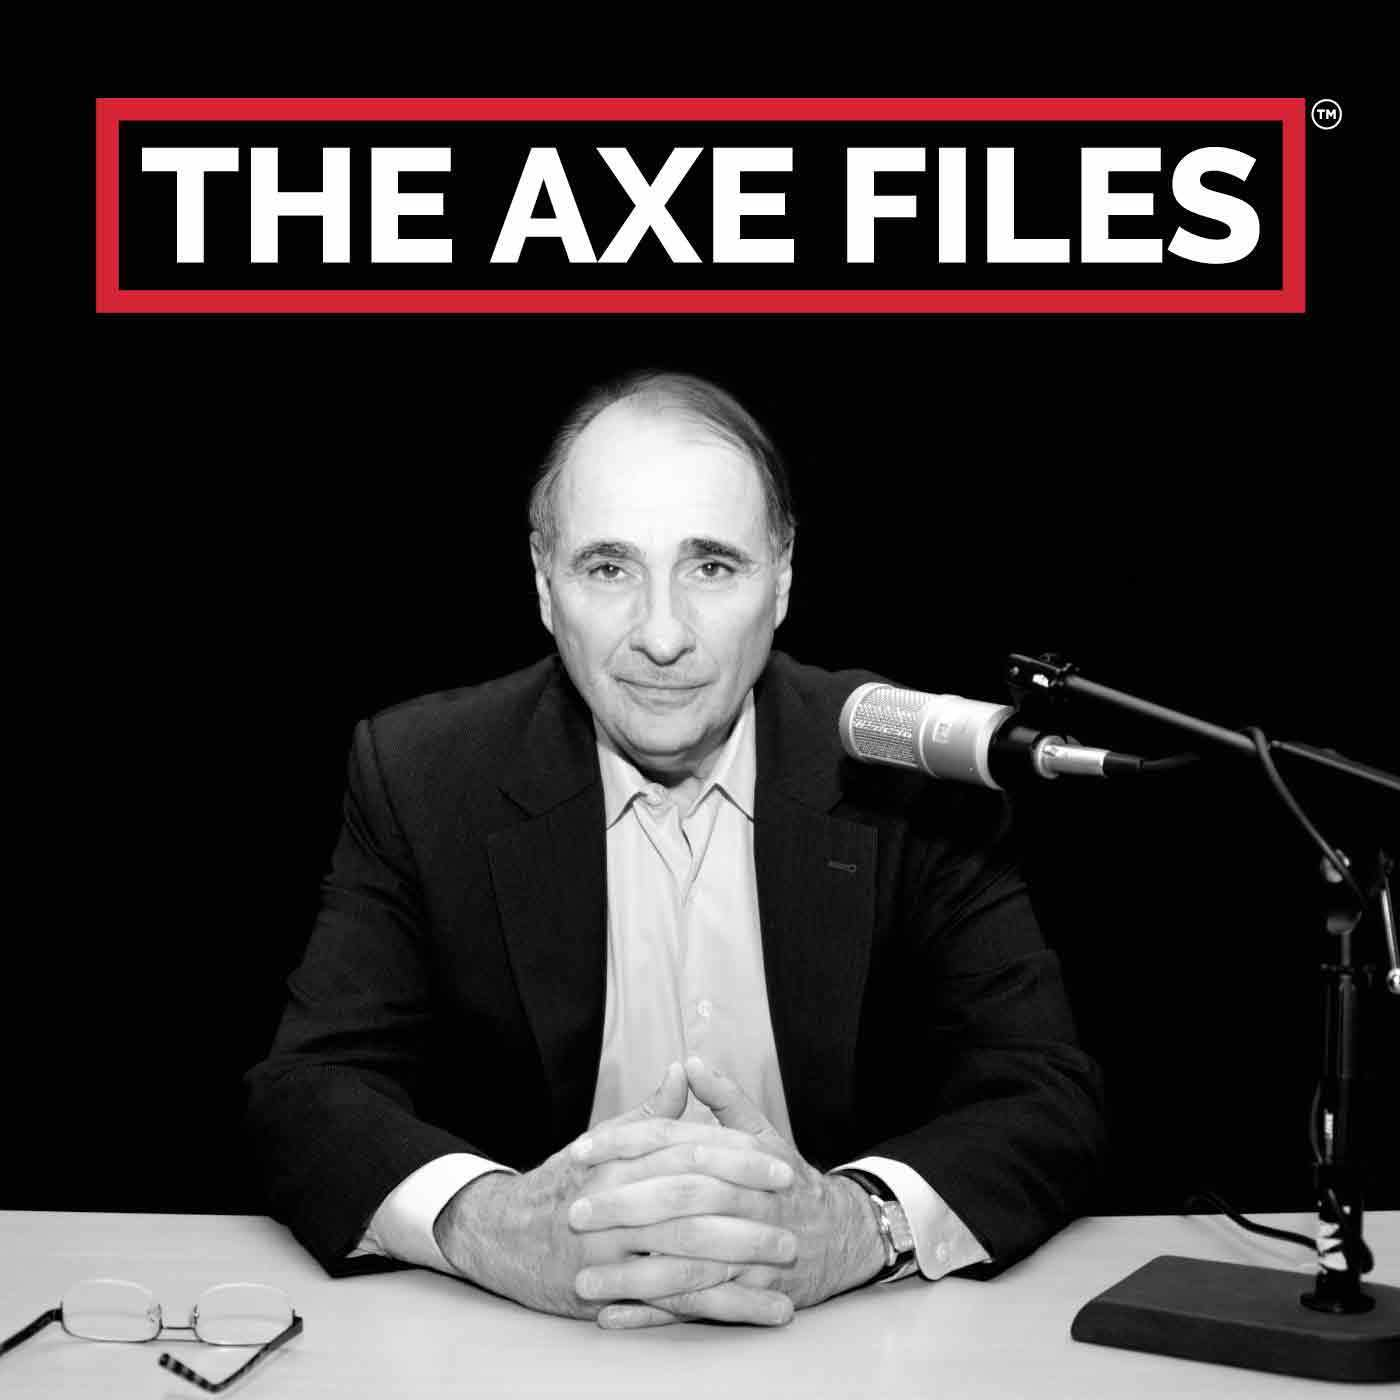 Special Episode - David Axelrod